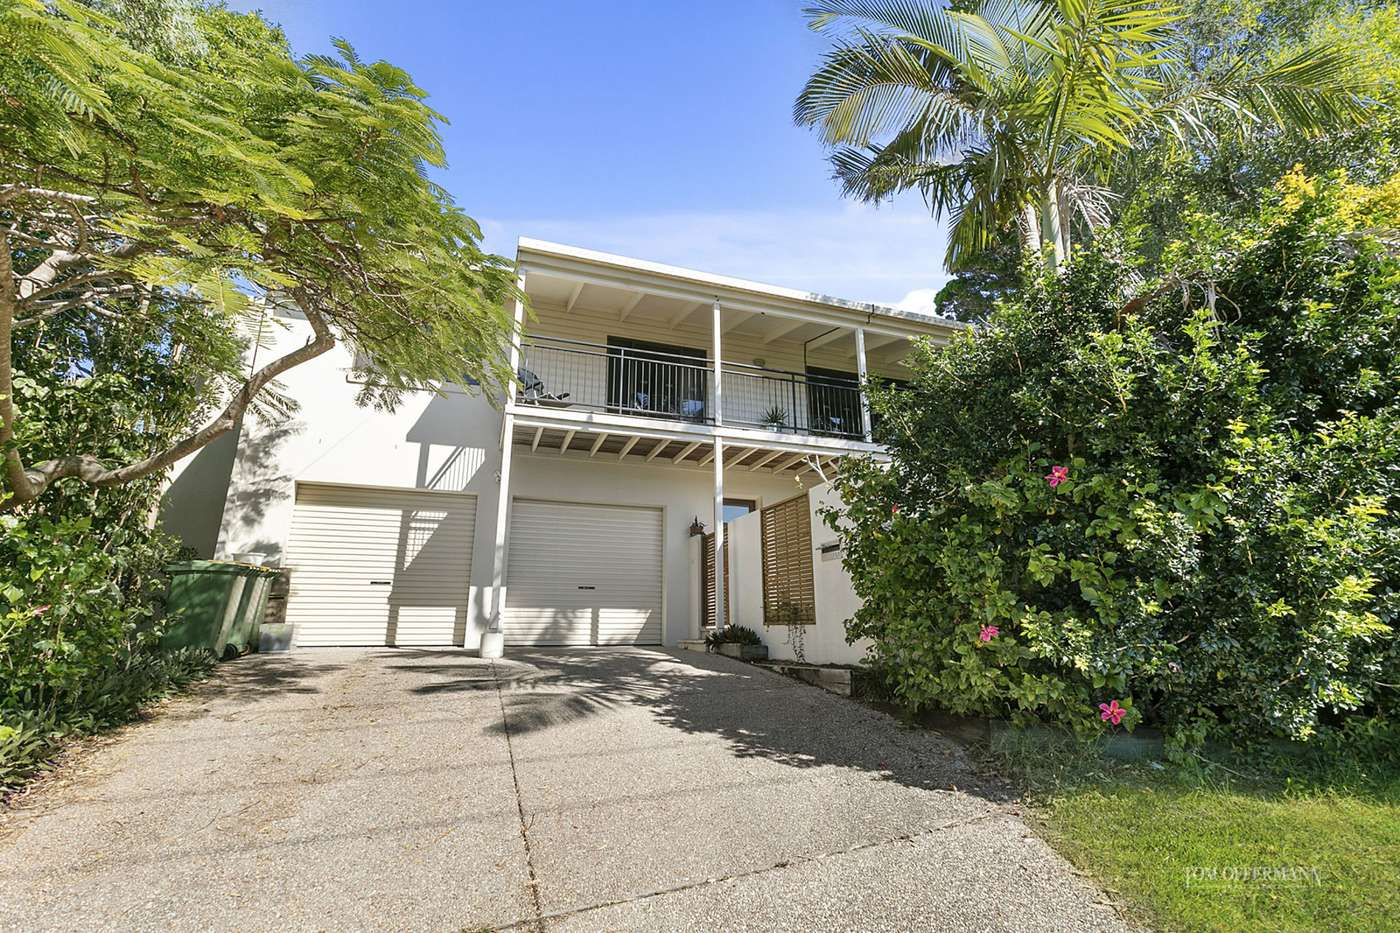 Main view of Homely house listing, 11 Toulambi Street, Noosa Heads, QLD 4567